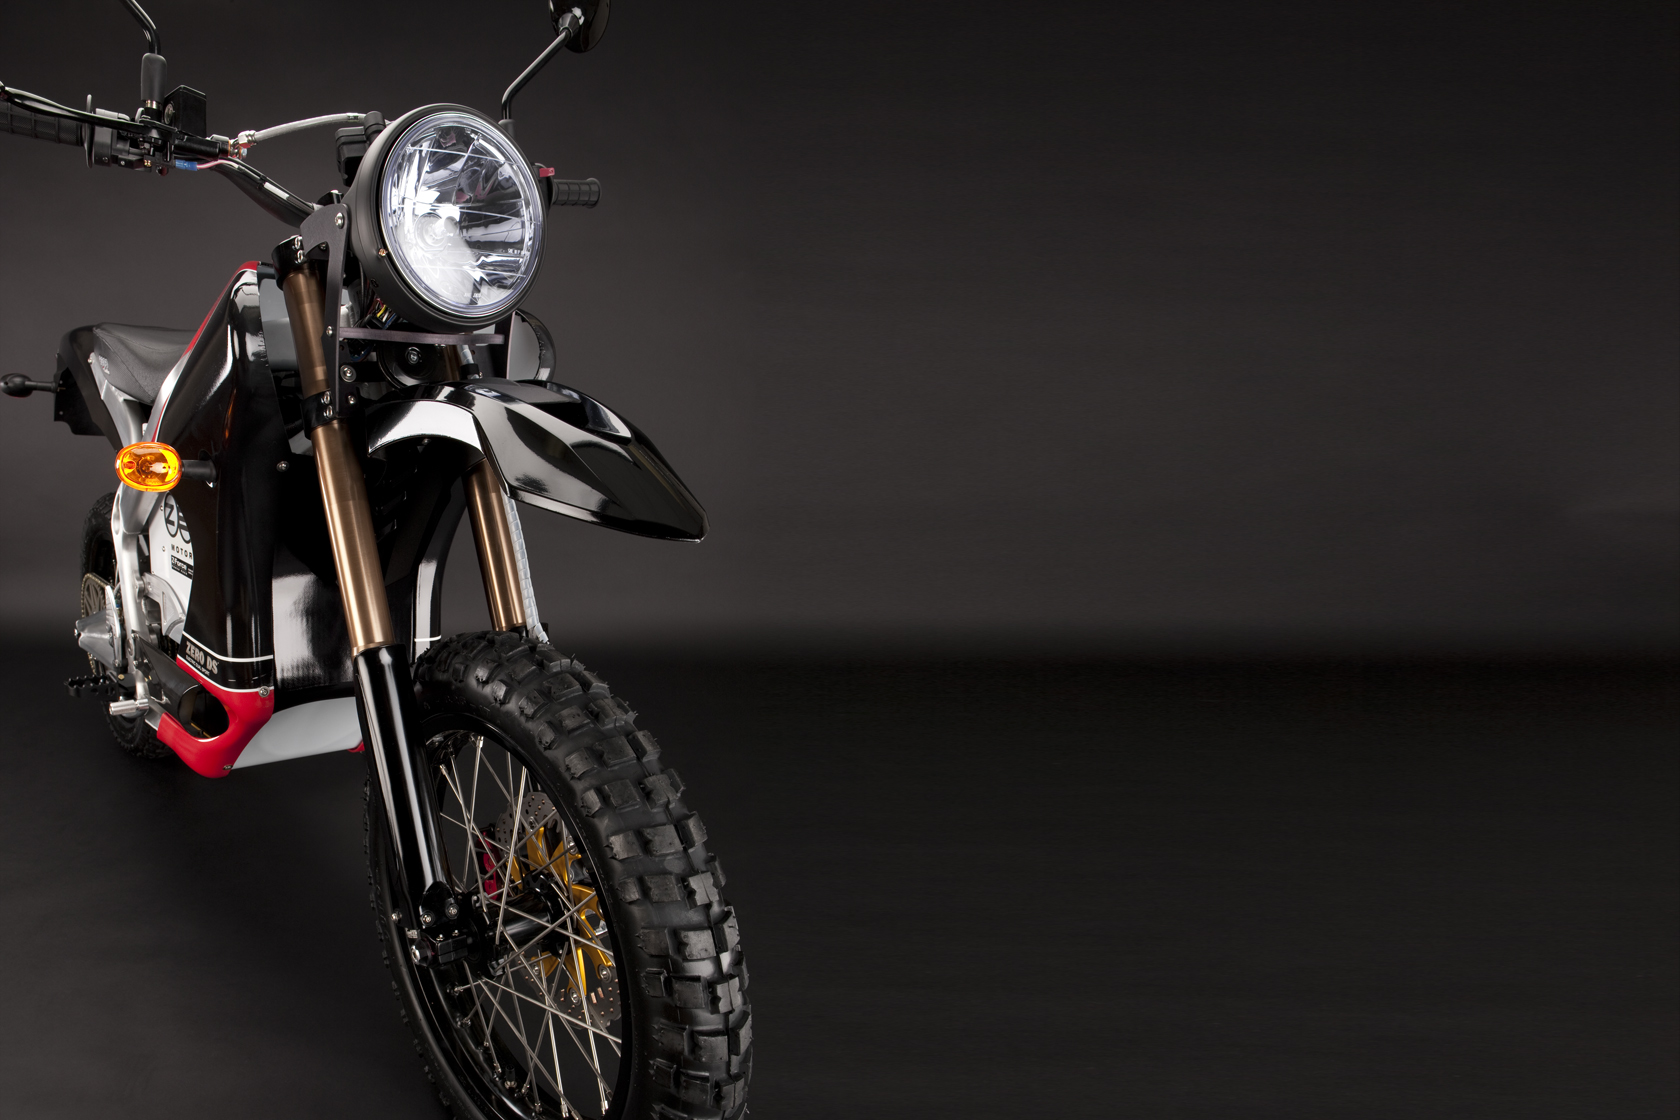 2010 Zero DS Electric Motorcycle: Front Fork